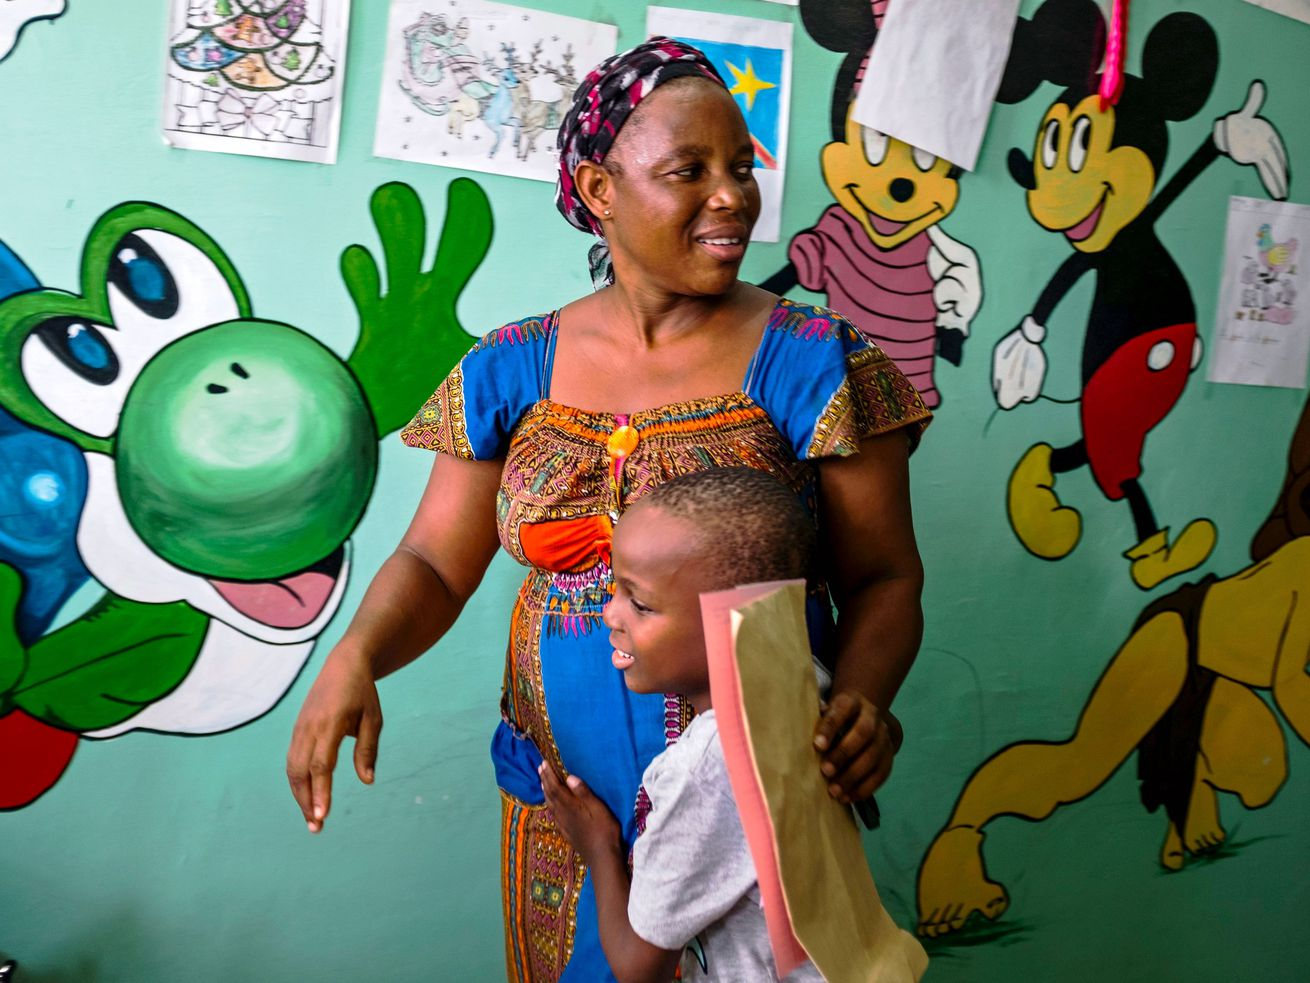 A mother embraces her son, who suffers from malaria, in a pediatric clinic featuring a wall mural of cartoon character.